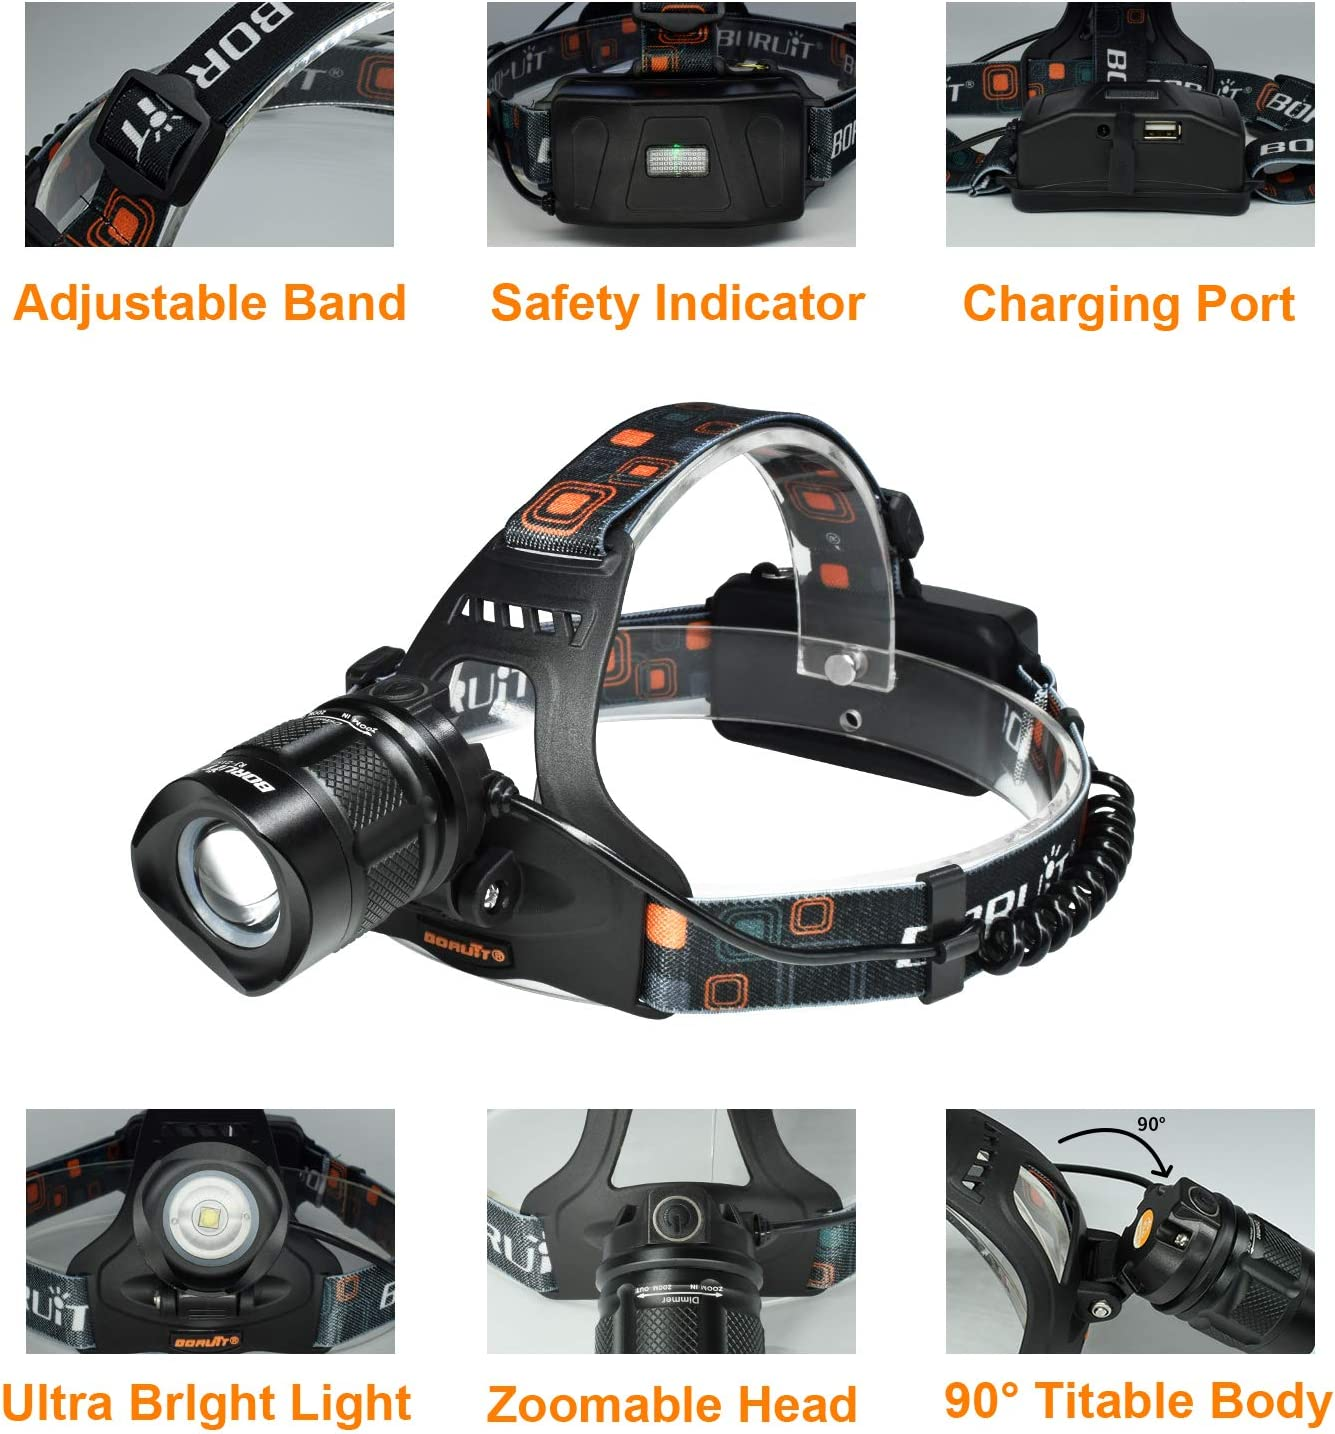 USB Rechargeable Headlamp Aidisun Brightest High Lumen XM-L2 LED Work Headlight Flashlight Waterproof, Zoomable, Adjustable Super Bright Head Lamp Best for Camping Hiking Biking Hunting Running